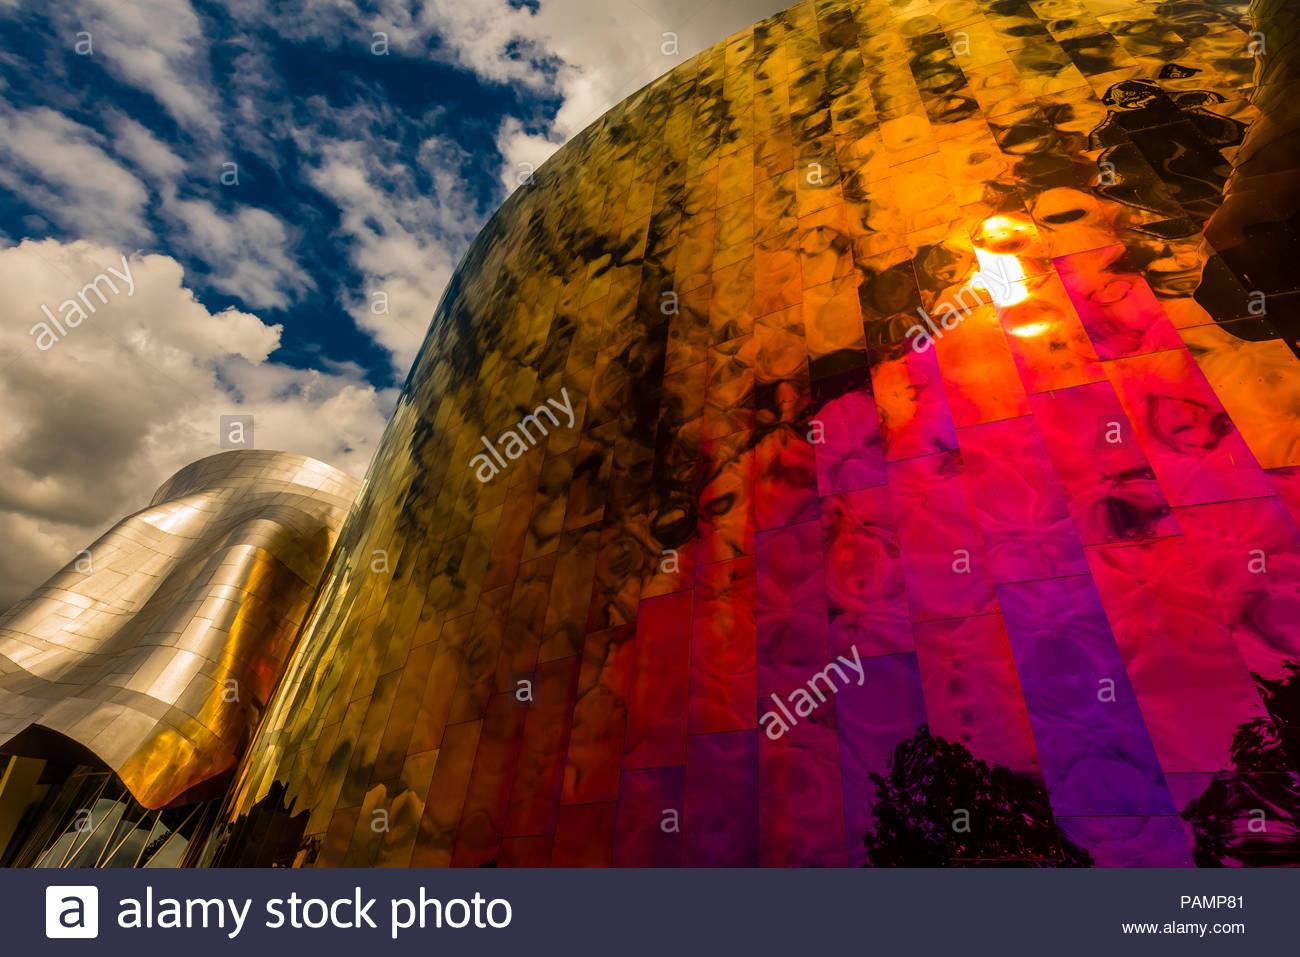 The Frank Gehry designed MoPop (Museum of Pop Culture